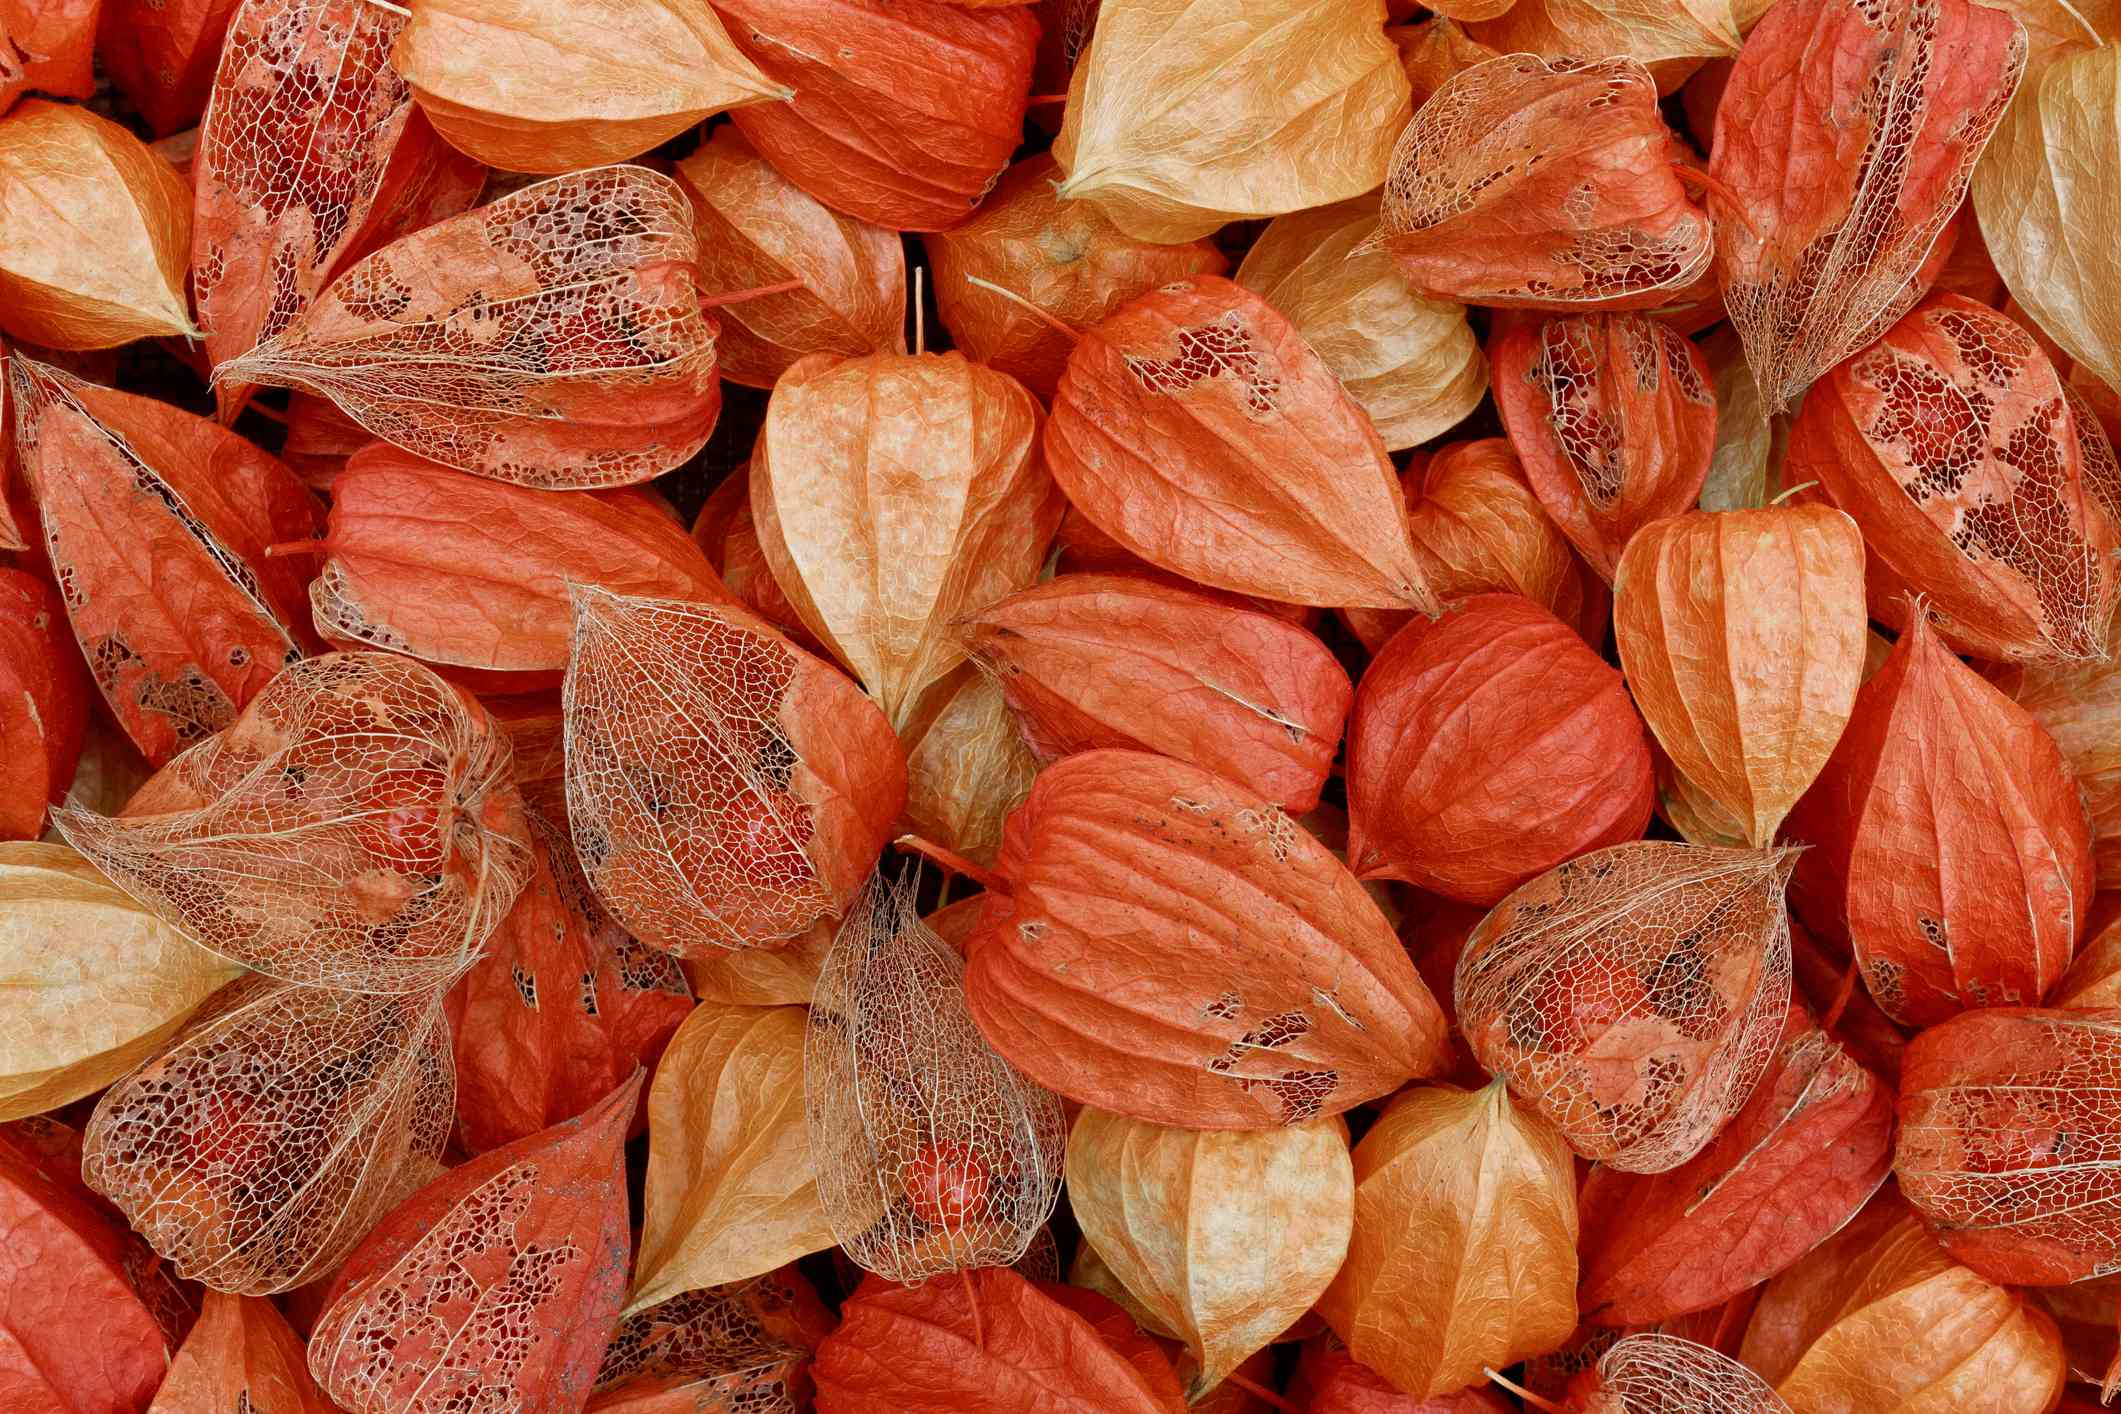 full-frame overhead image of light and dark orange chinese lantern plant husks with some dried so that you can see through to the tiny orange berry inside